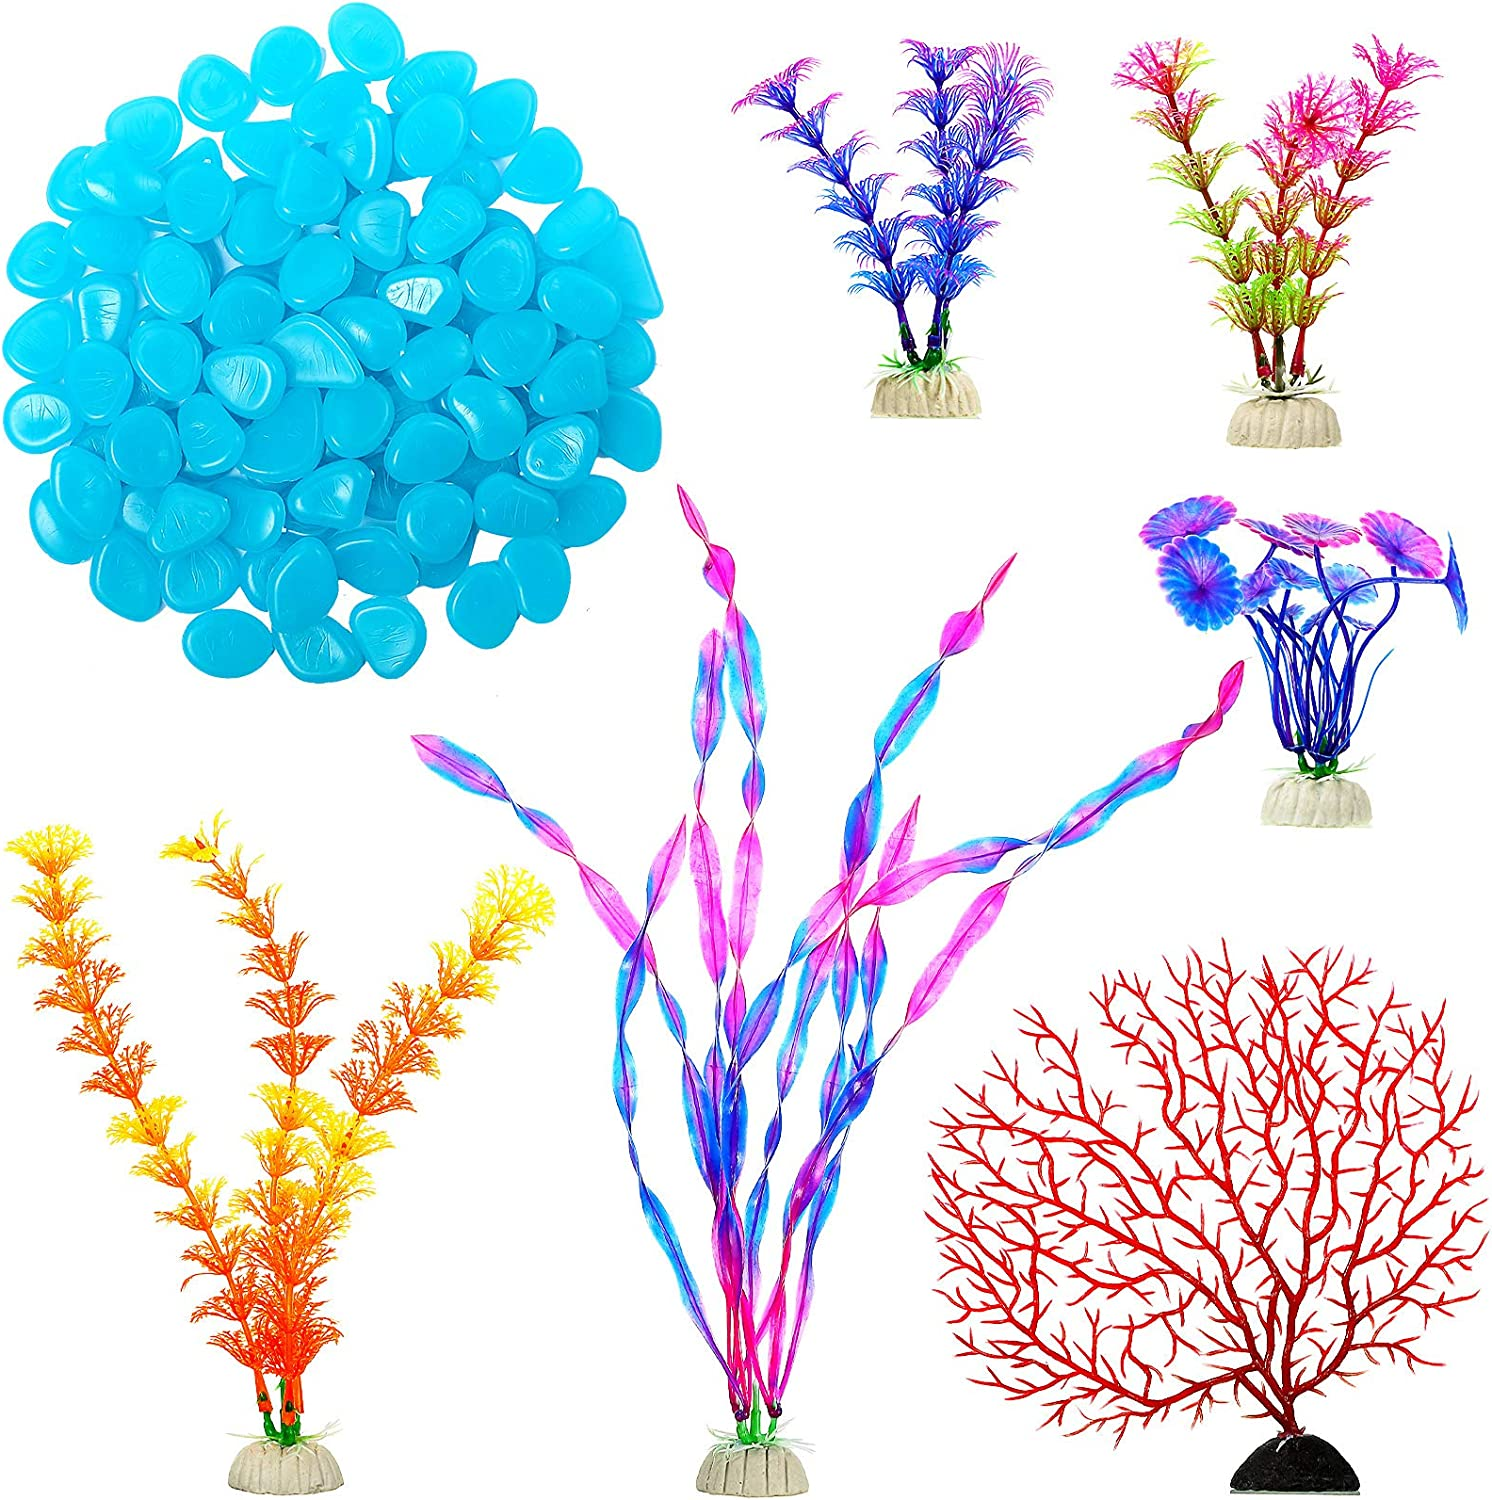 WILLBOND 106 Pieces Coral Plastic Plants and Glowing Rocks Set Include 6 Pieces Small Artificial Seaweed Decor and 100 Pieces Luminous Pebbles Glow Stone for Fish Tank Aquarium Landscaping